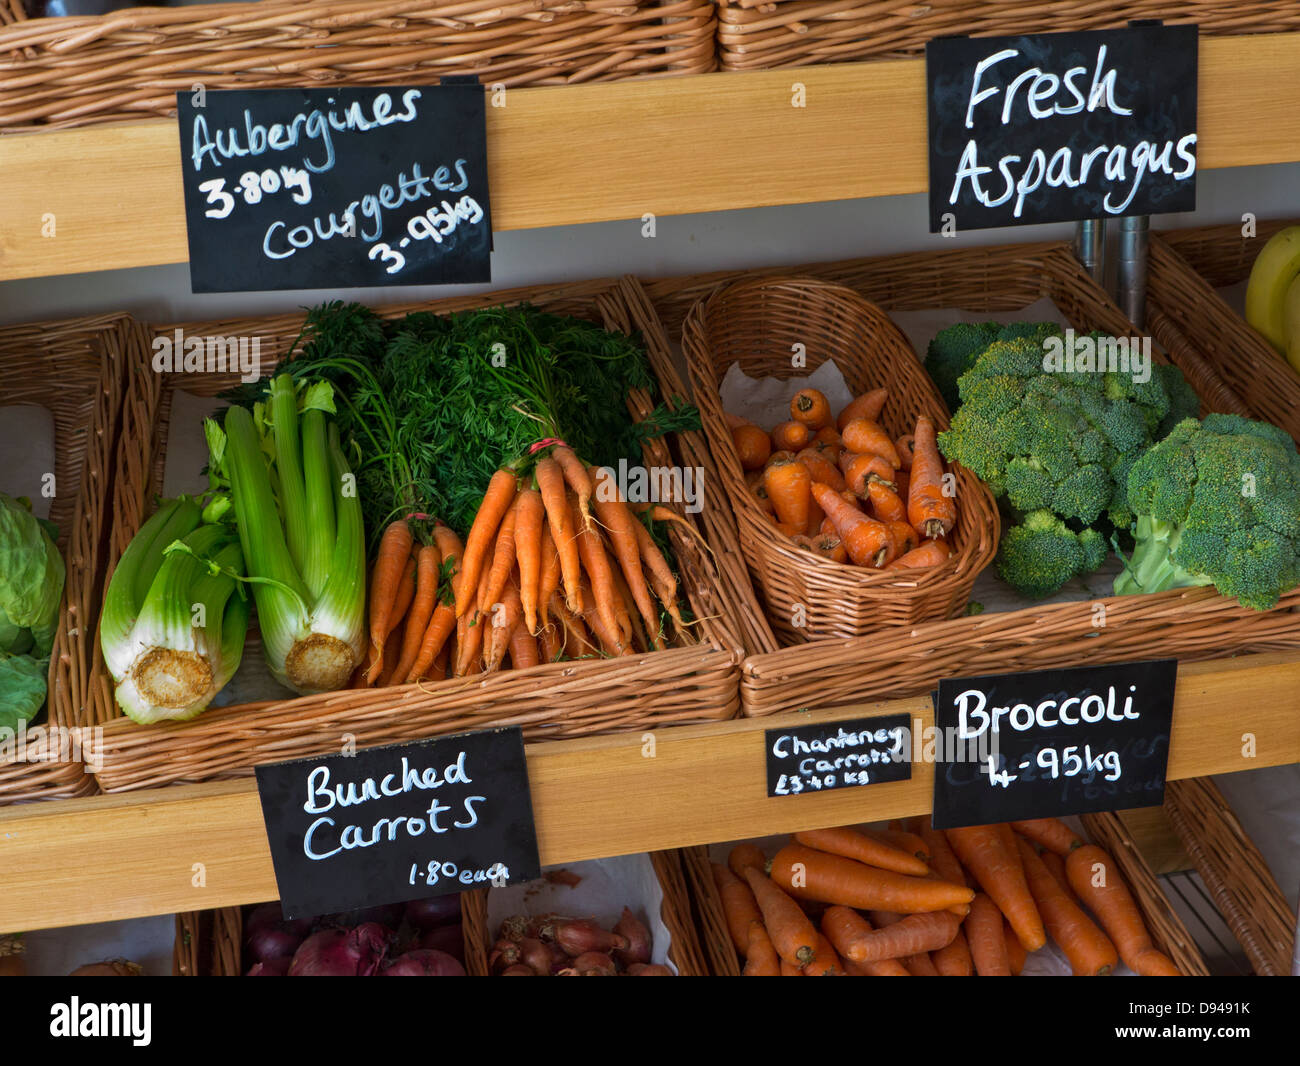 Traditional high street produce farm shop interior with fresh local fruit and vegetables on sale Stow on the Wold - Stock Image